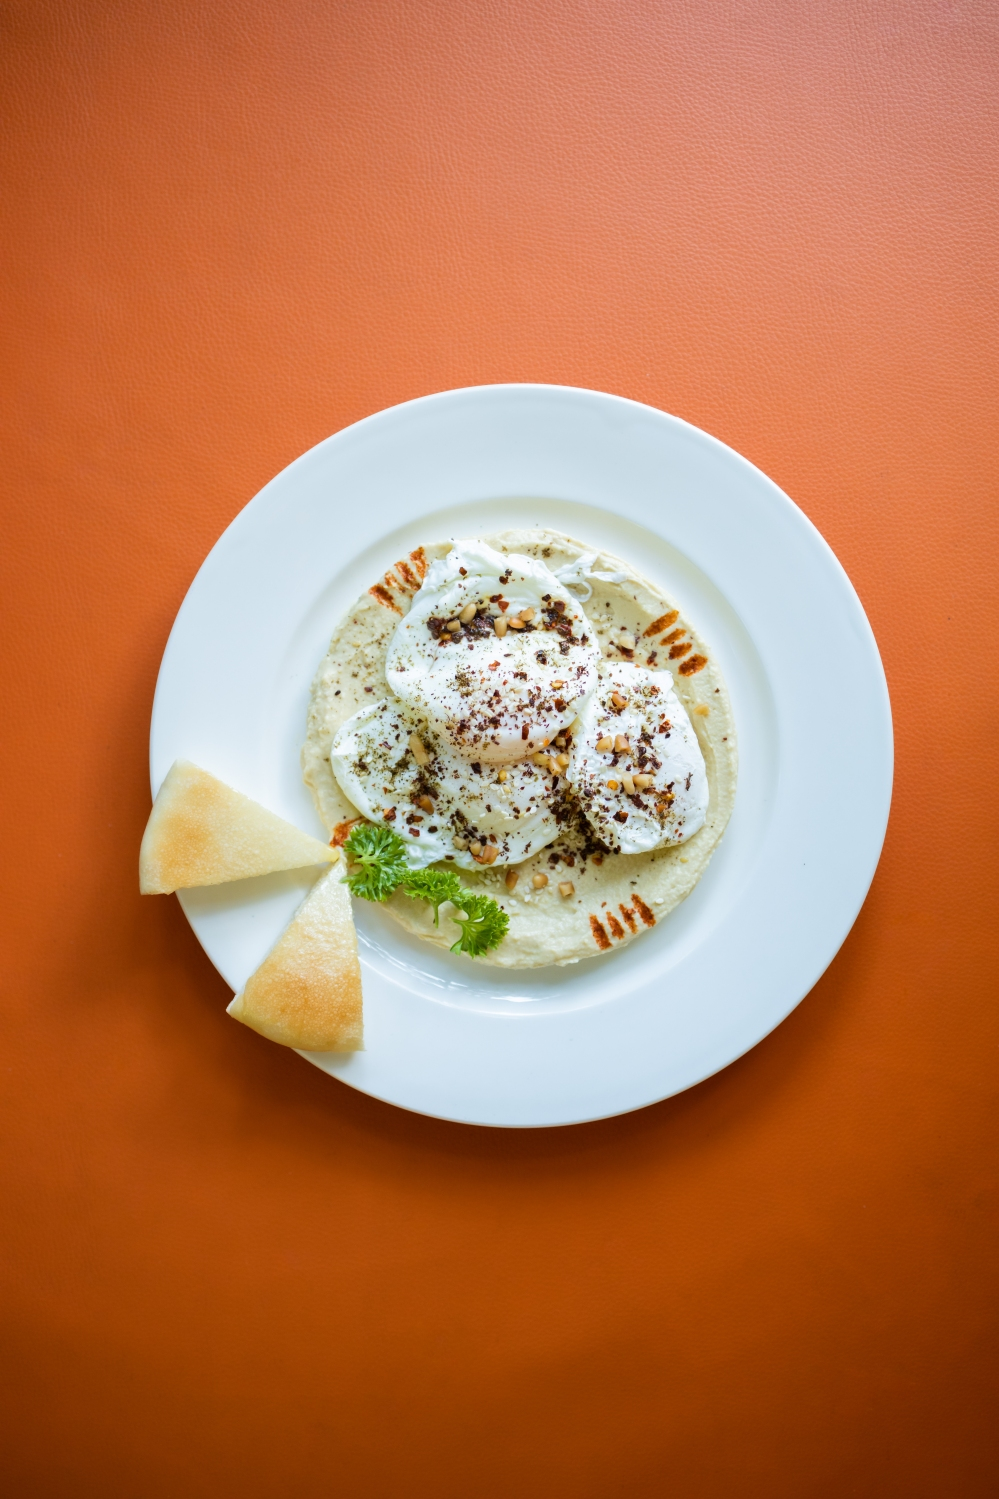 Poched Eggs with Hummus